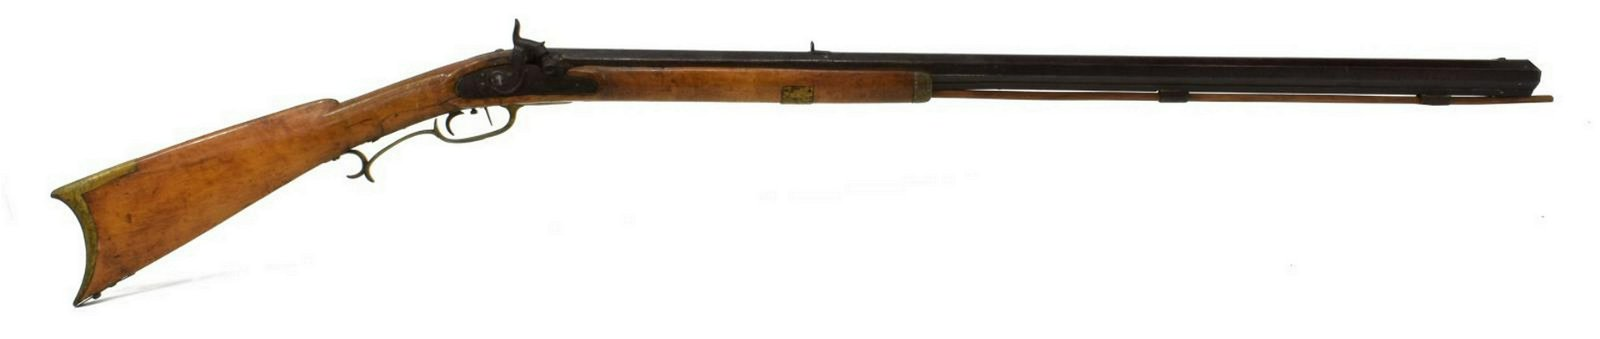 AMERICAN HALF STOCK PERCUSSION LONG RIFLE